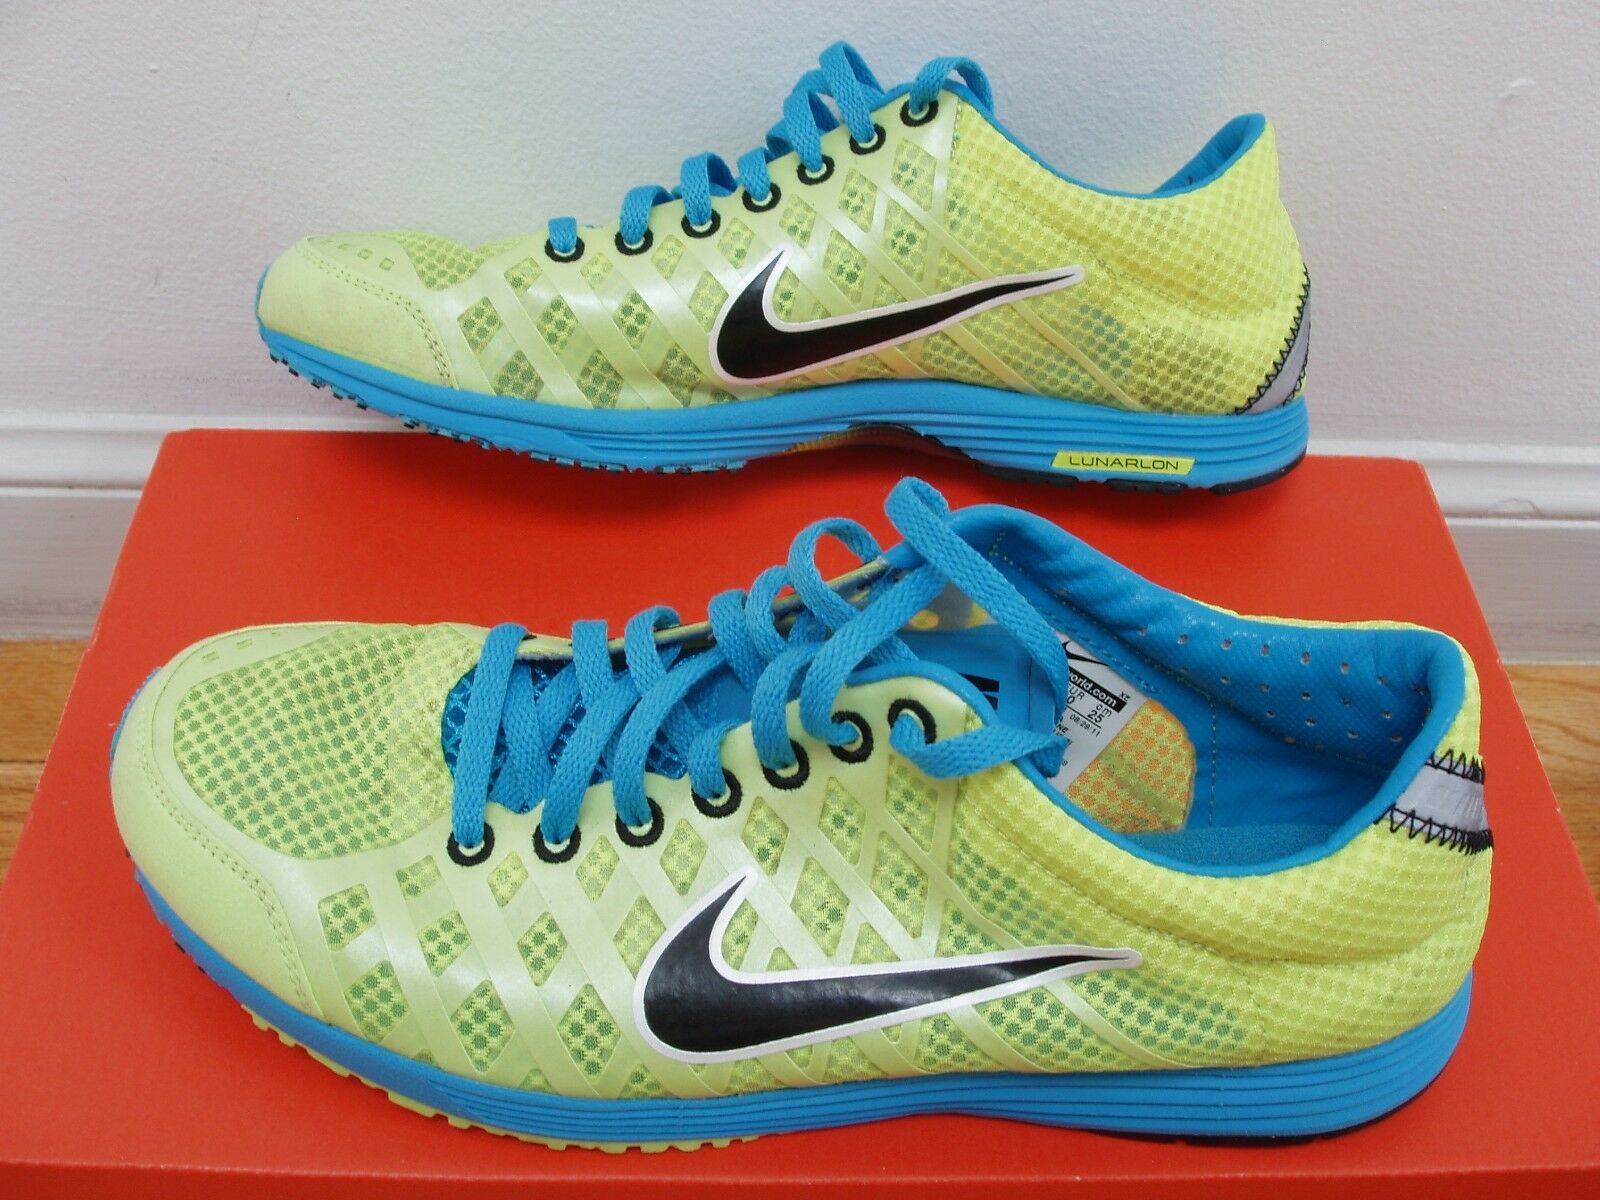 EUC Nike Lunarspider R2 running shoes mens 7=womens 8.5 neon yellow/blue Comfortable and good-looking